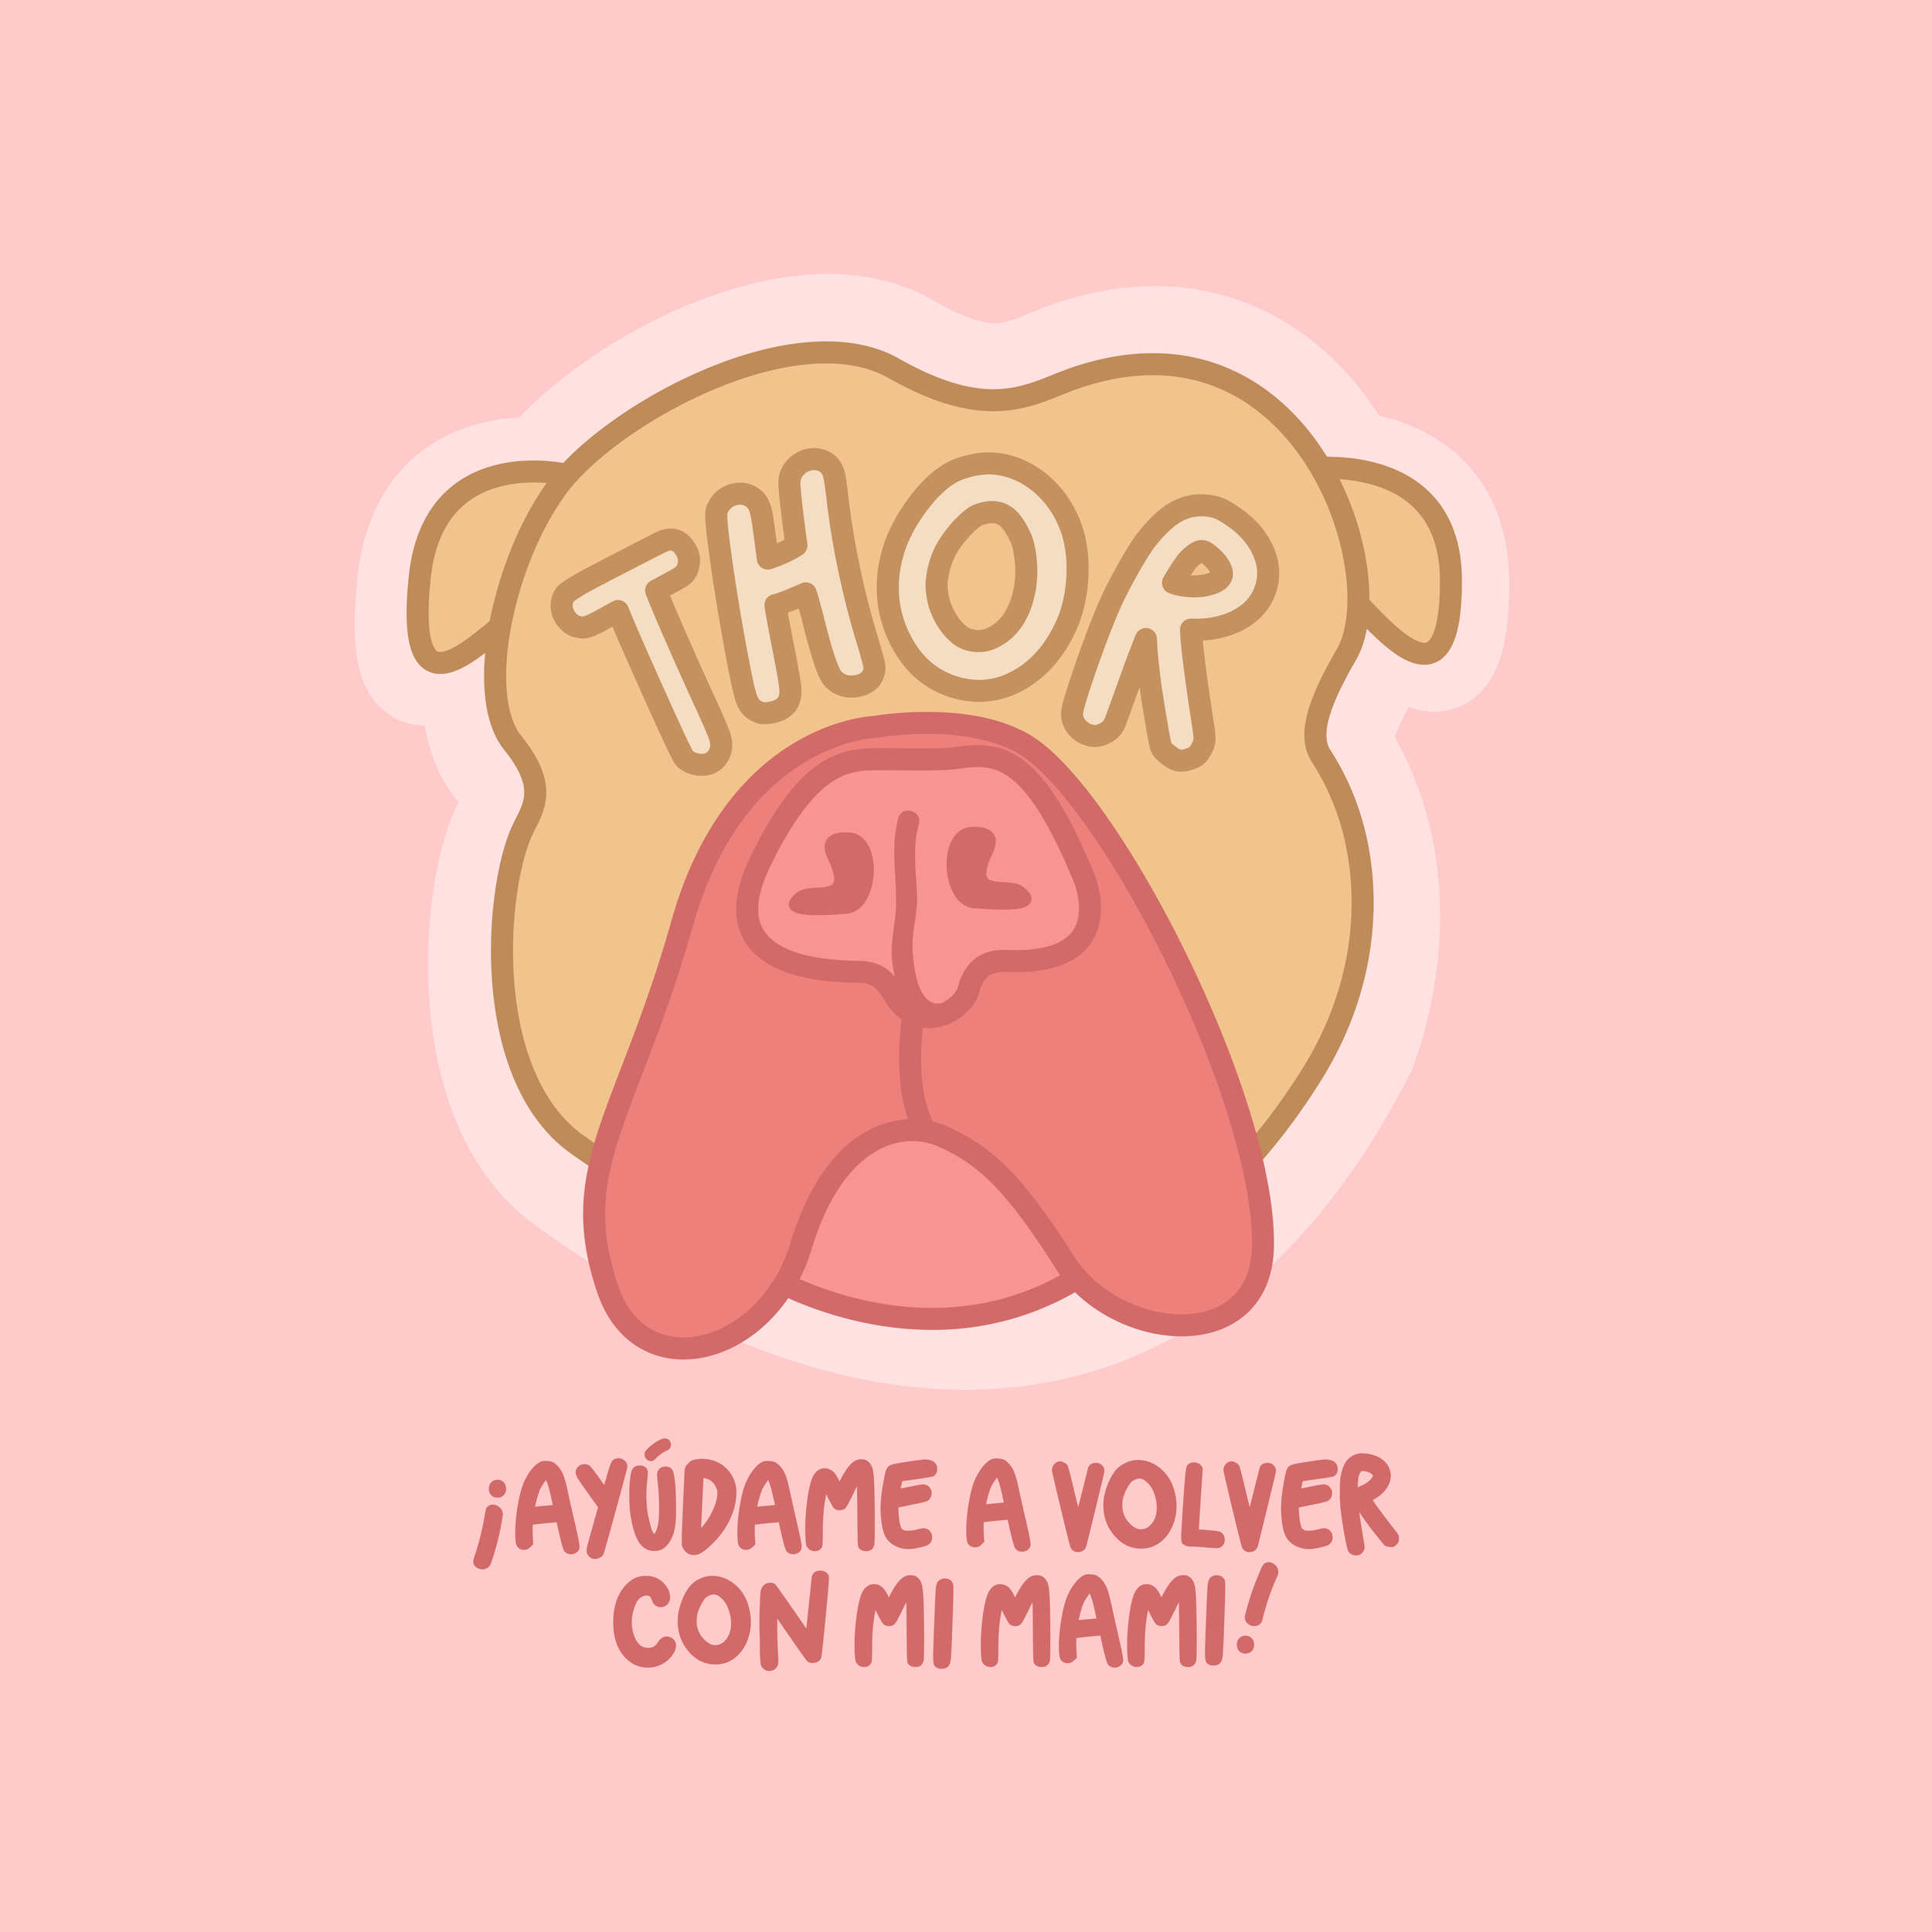 thor-01.png